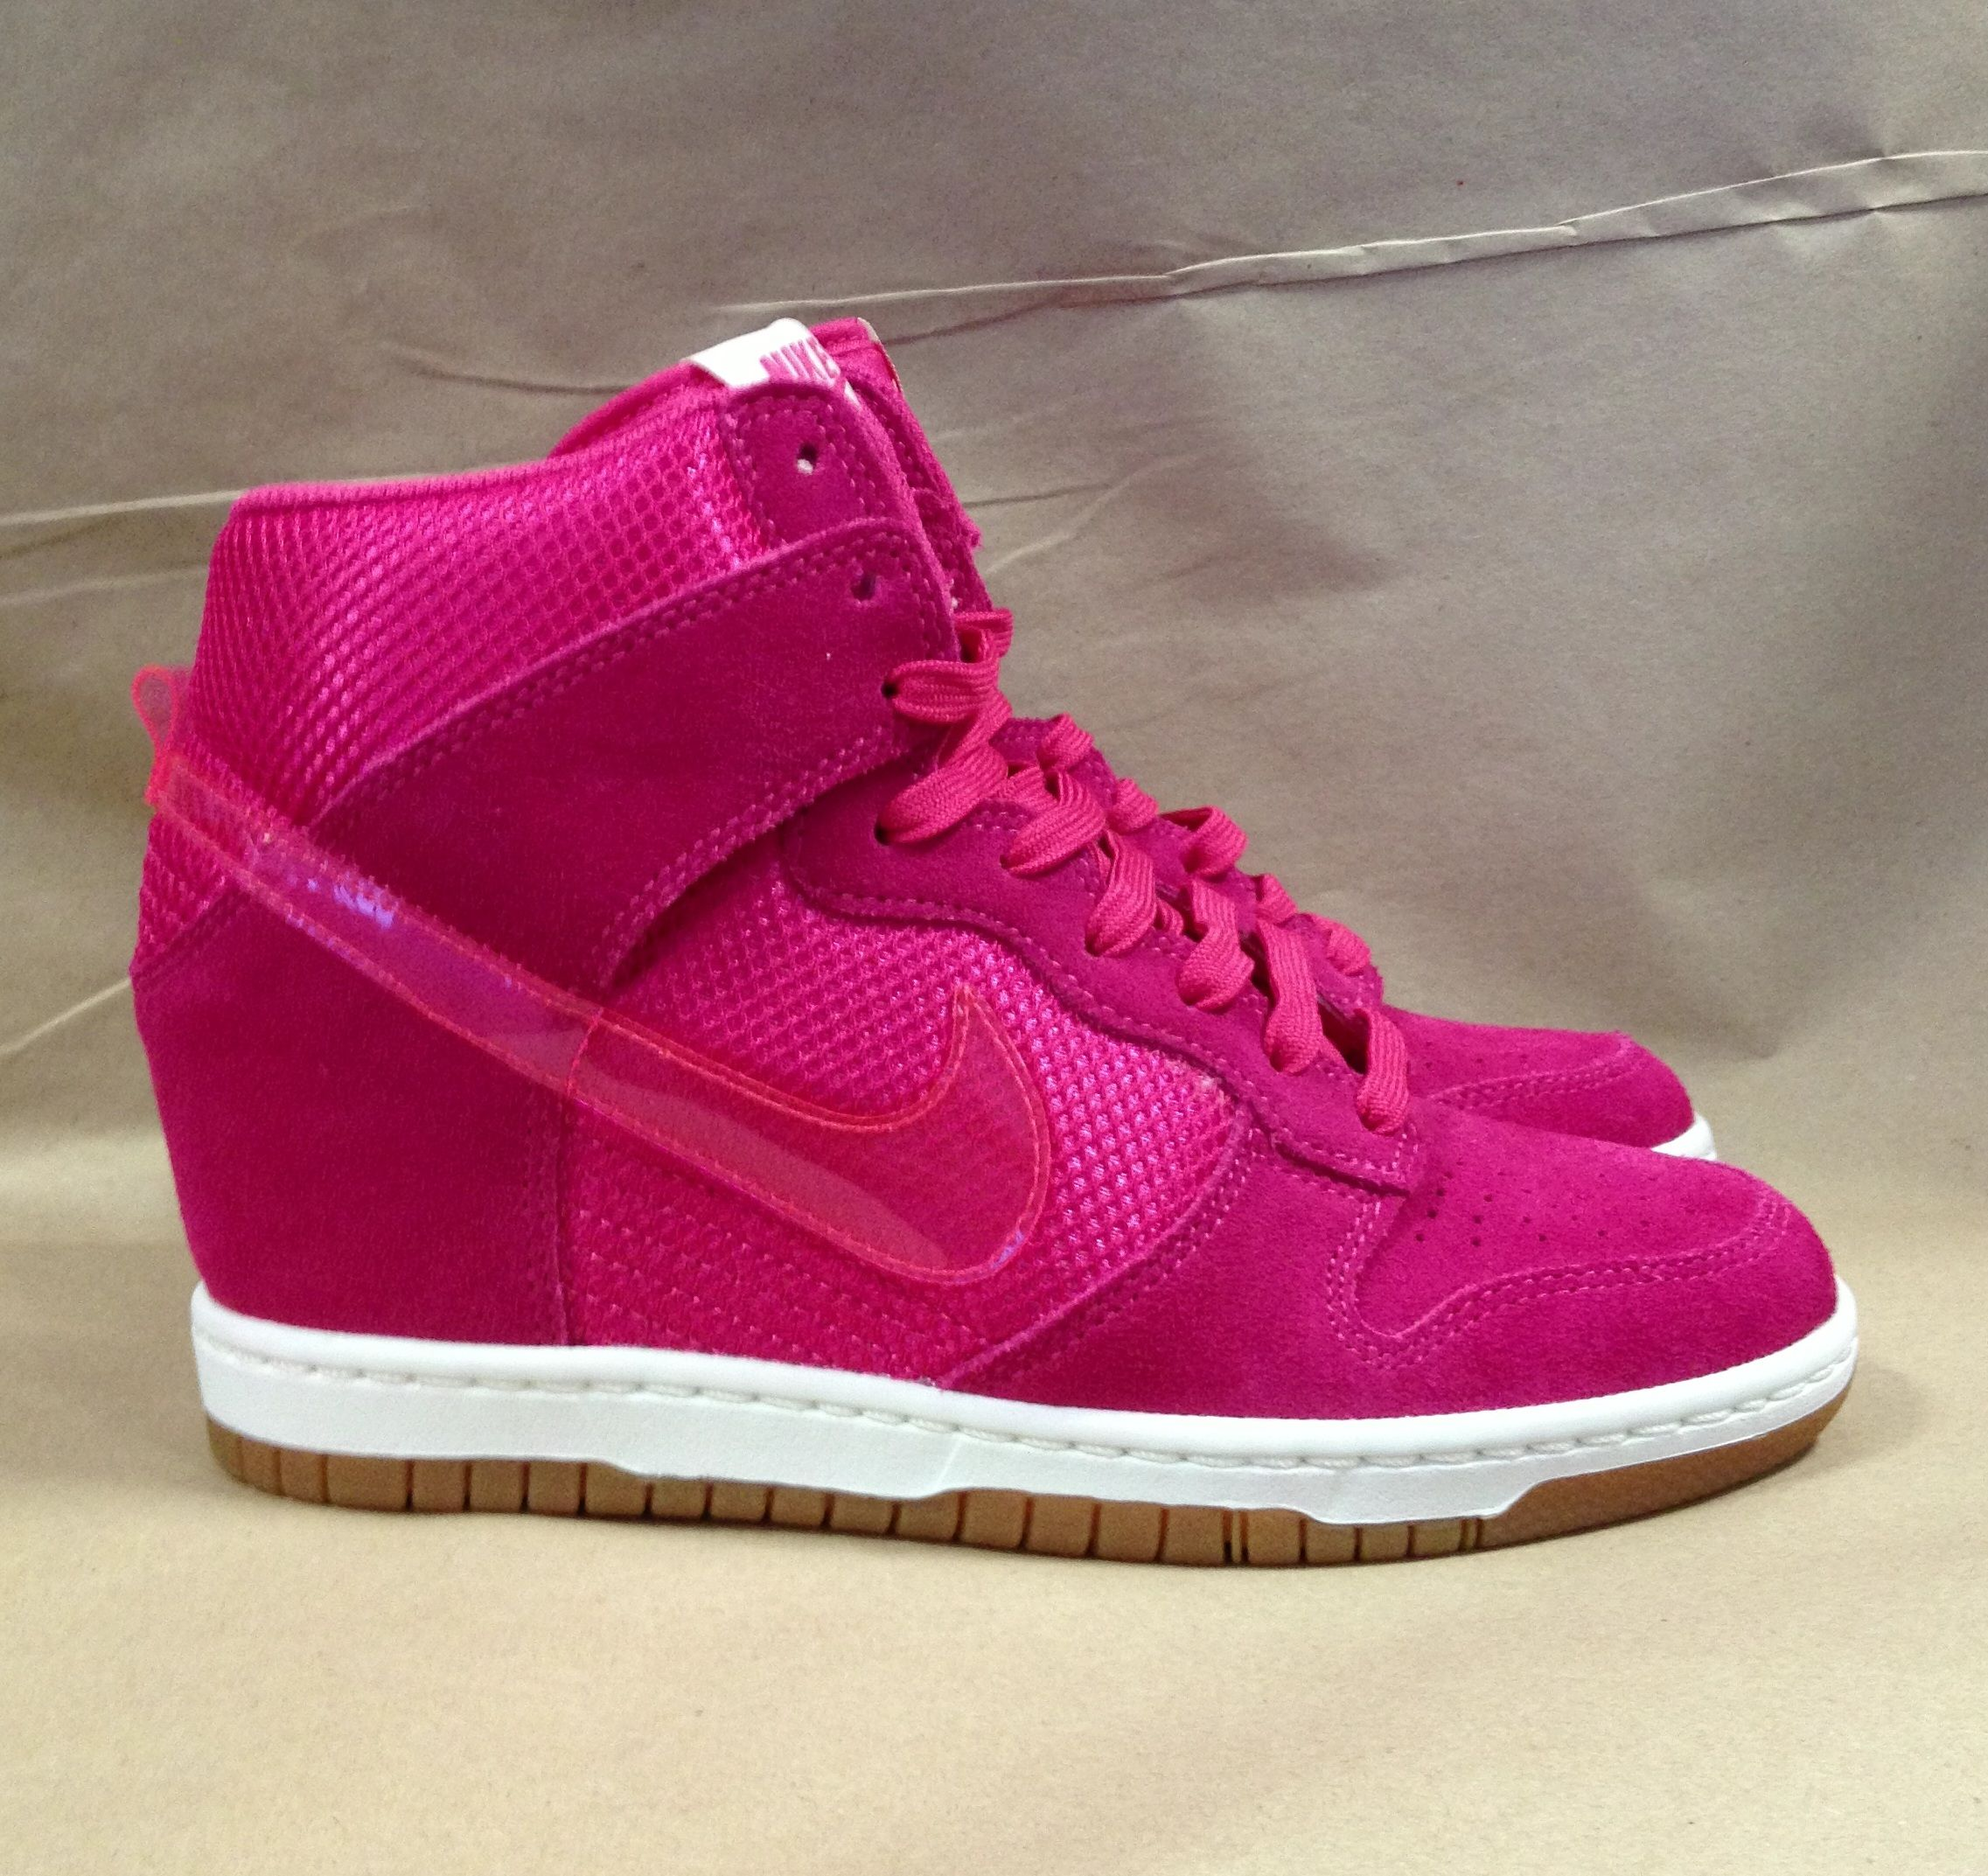 ff296a3d6b71 Remember that time when you really wanted a pair of bright pink Nike dunks  with a hidden wedge  DONE.  schuh  nikedunk  nike